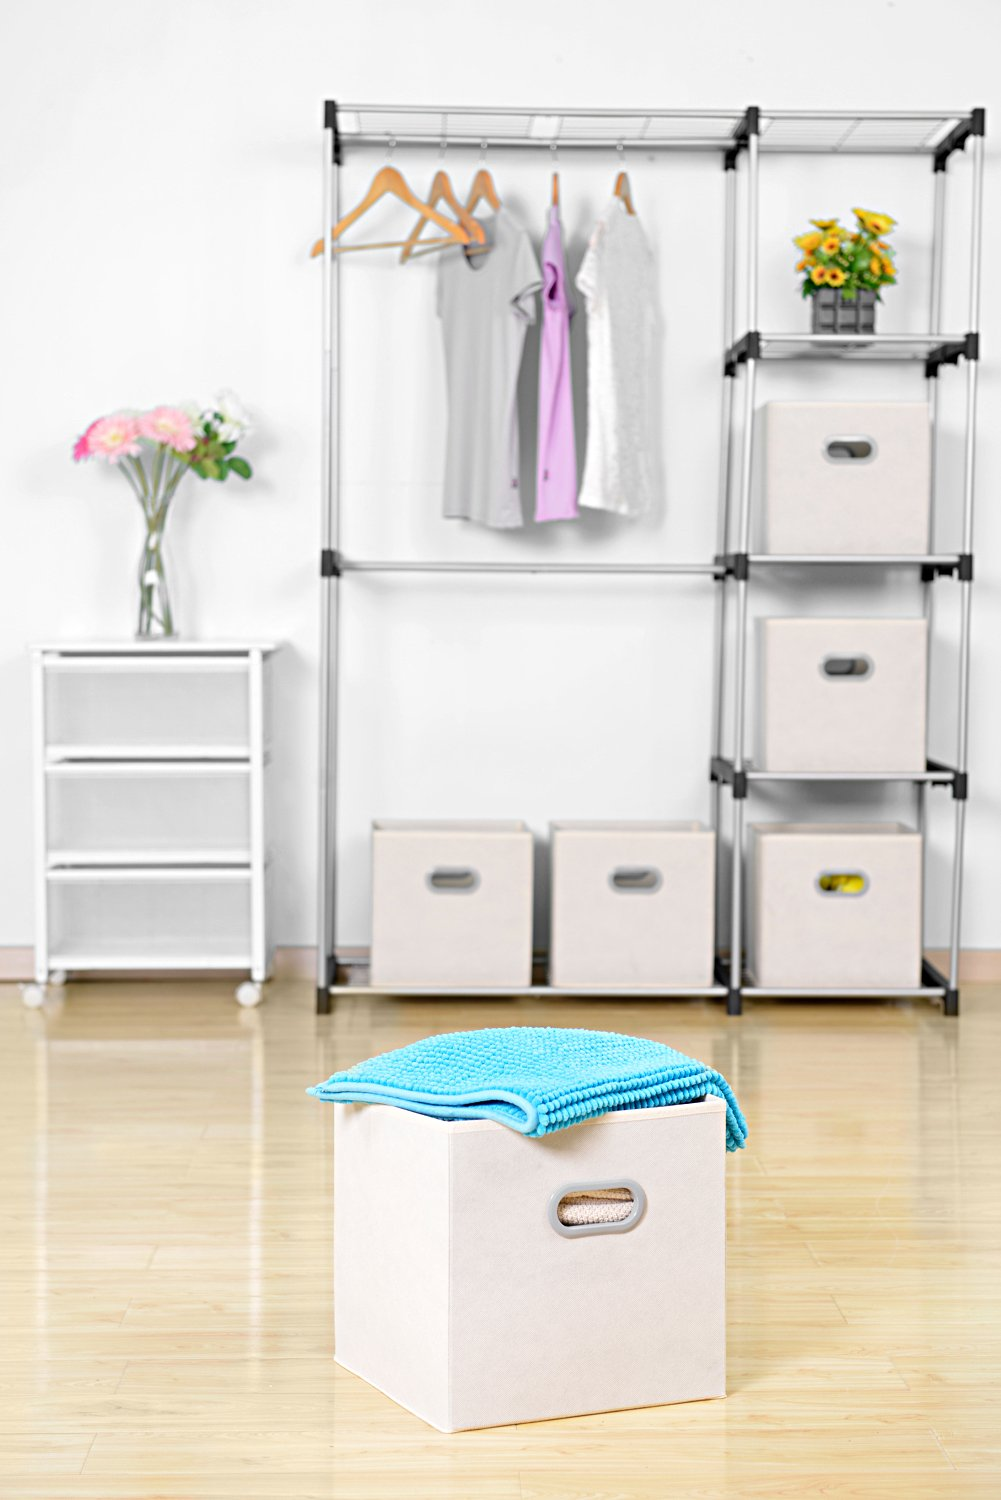 The Best Storage Container Sets (& Baskets) For Your Bathroom: Reviews & Buying Guide 4